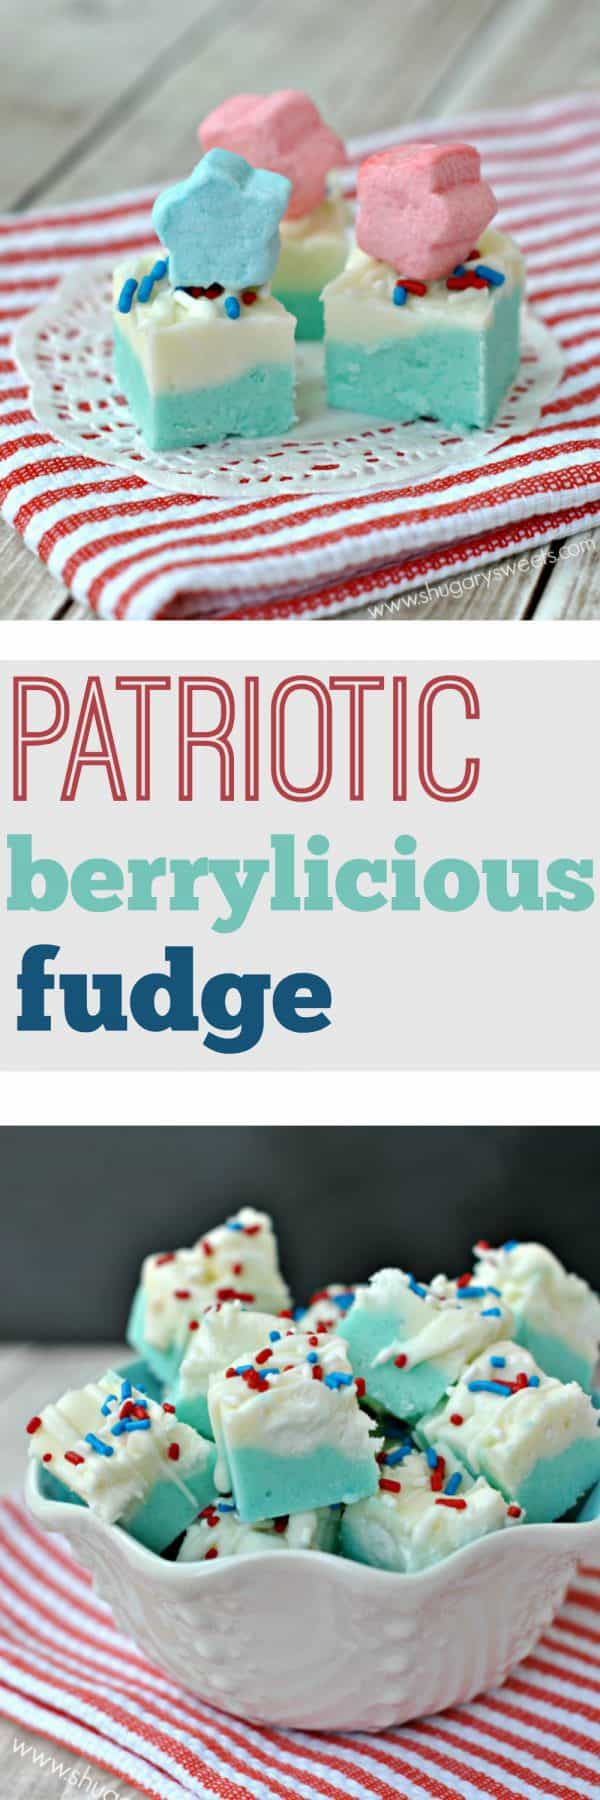 Delicious fudge all decked out for the holiday! Patriotic Berrylicious Fudge needs to be at your 4th of July party!